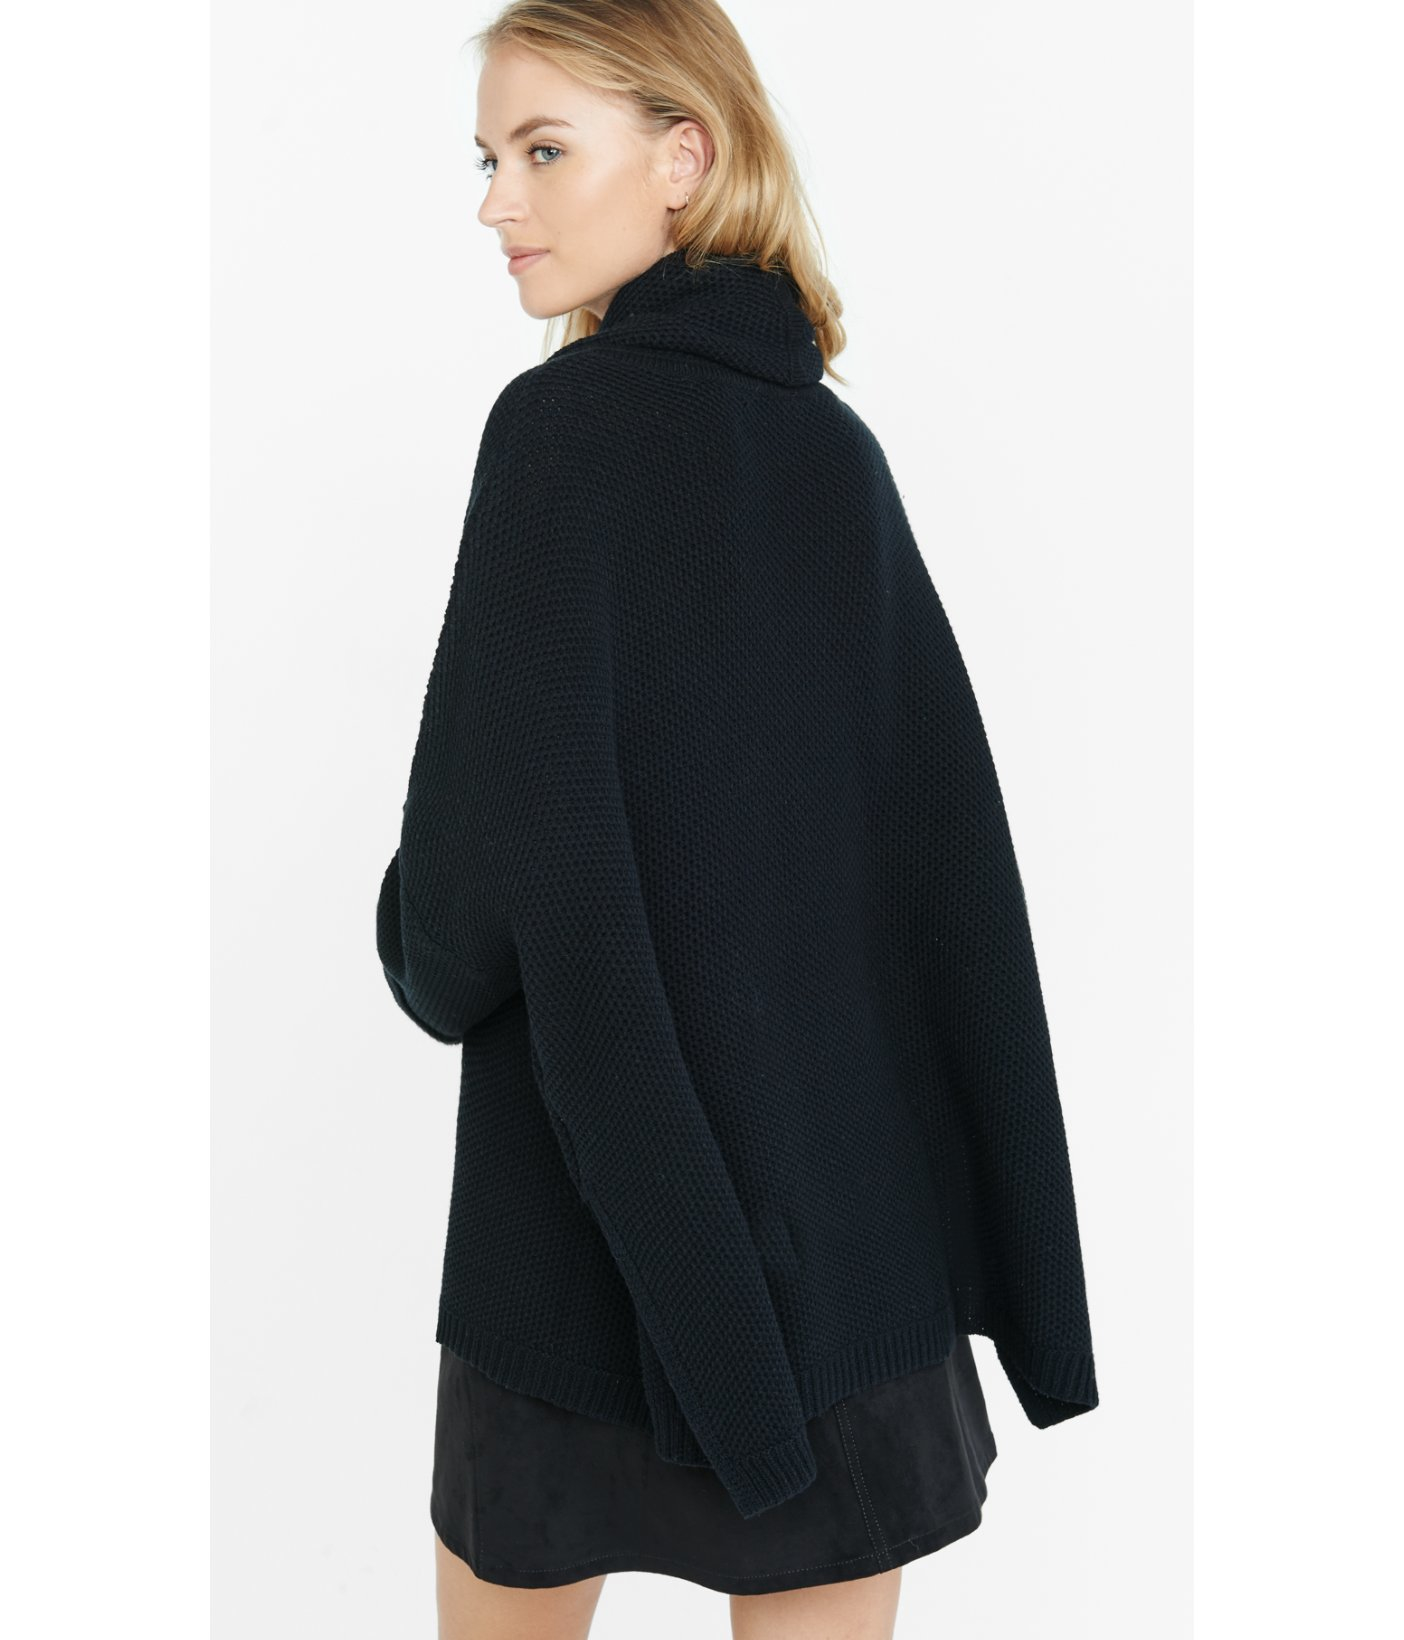 Express Cowl Neck Boxy Sweater in Black | Lyst